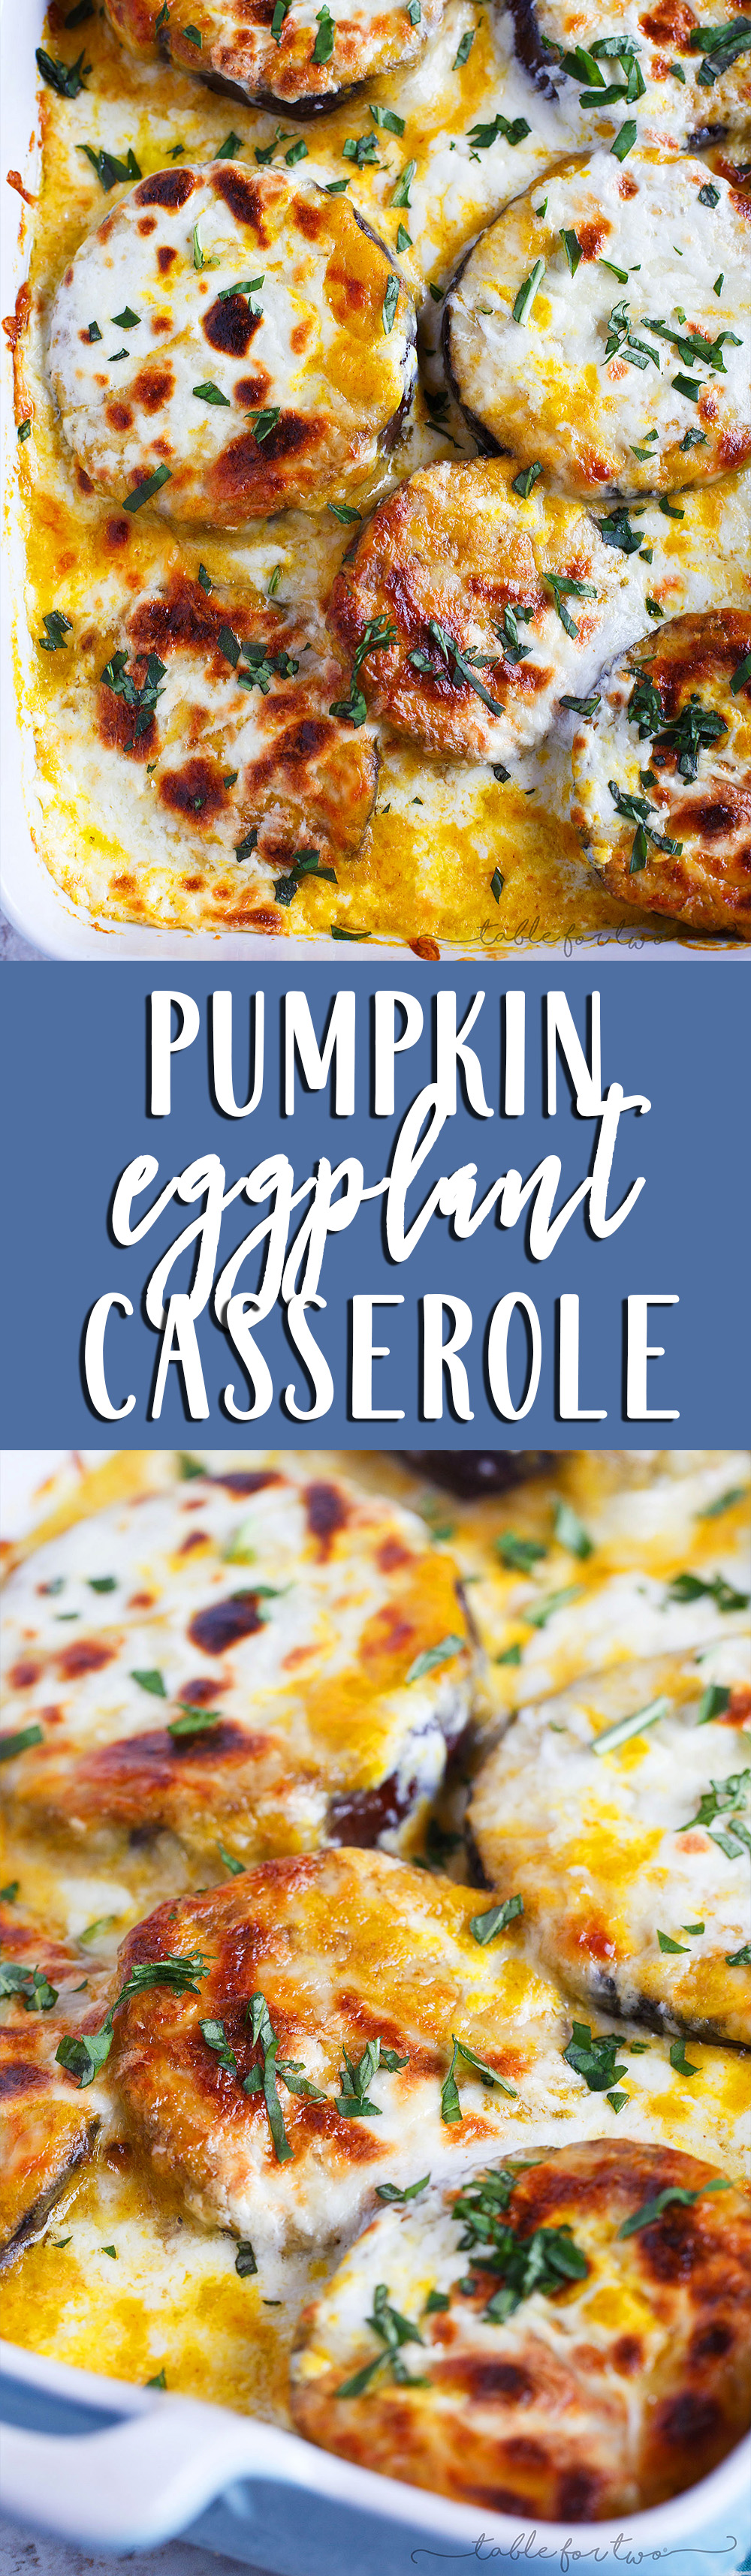 Pumpkin eggplant casserole with burrata is basically the casserole that says Fall and comfort food. You seriously need to get on board and make this ASAP!